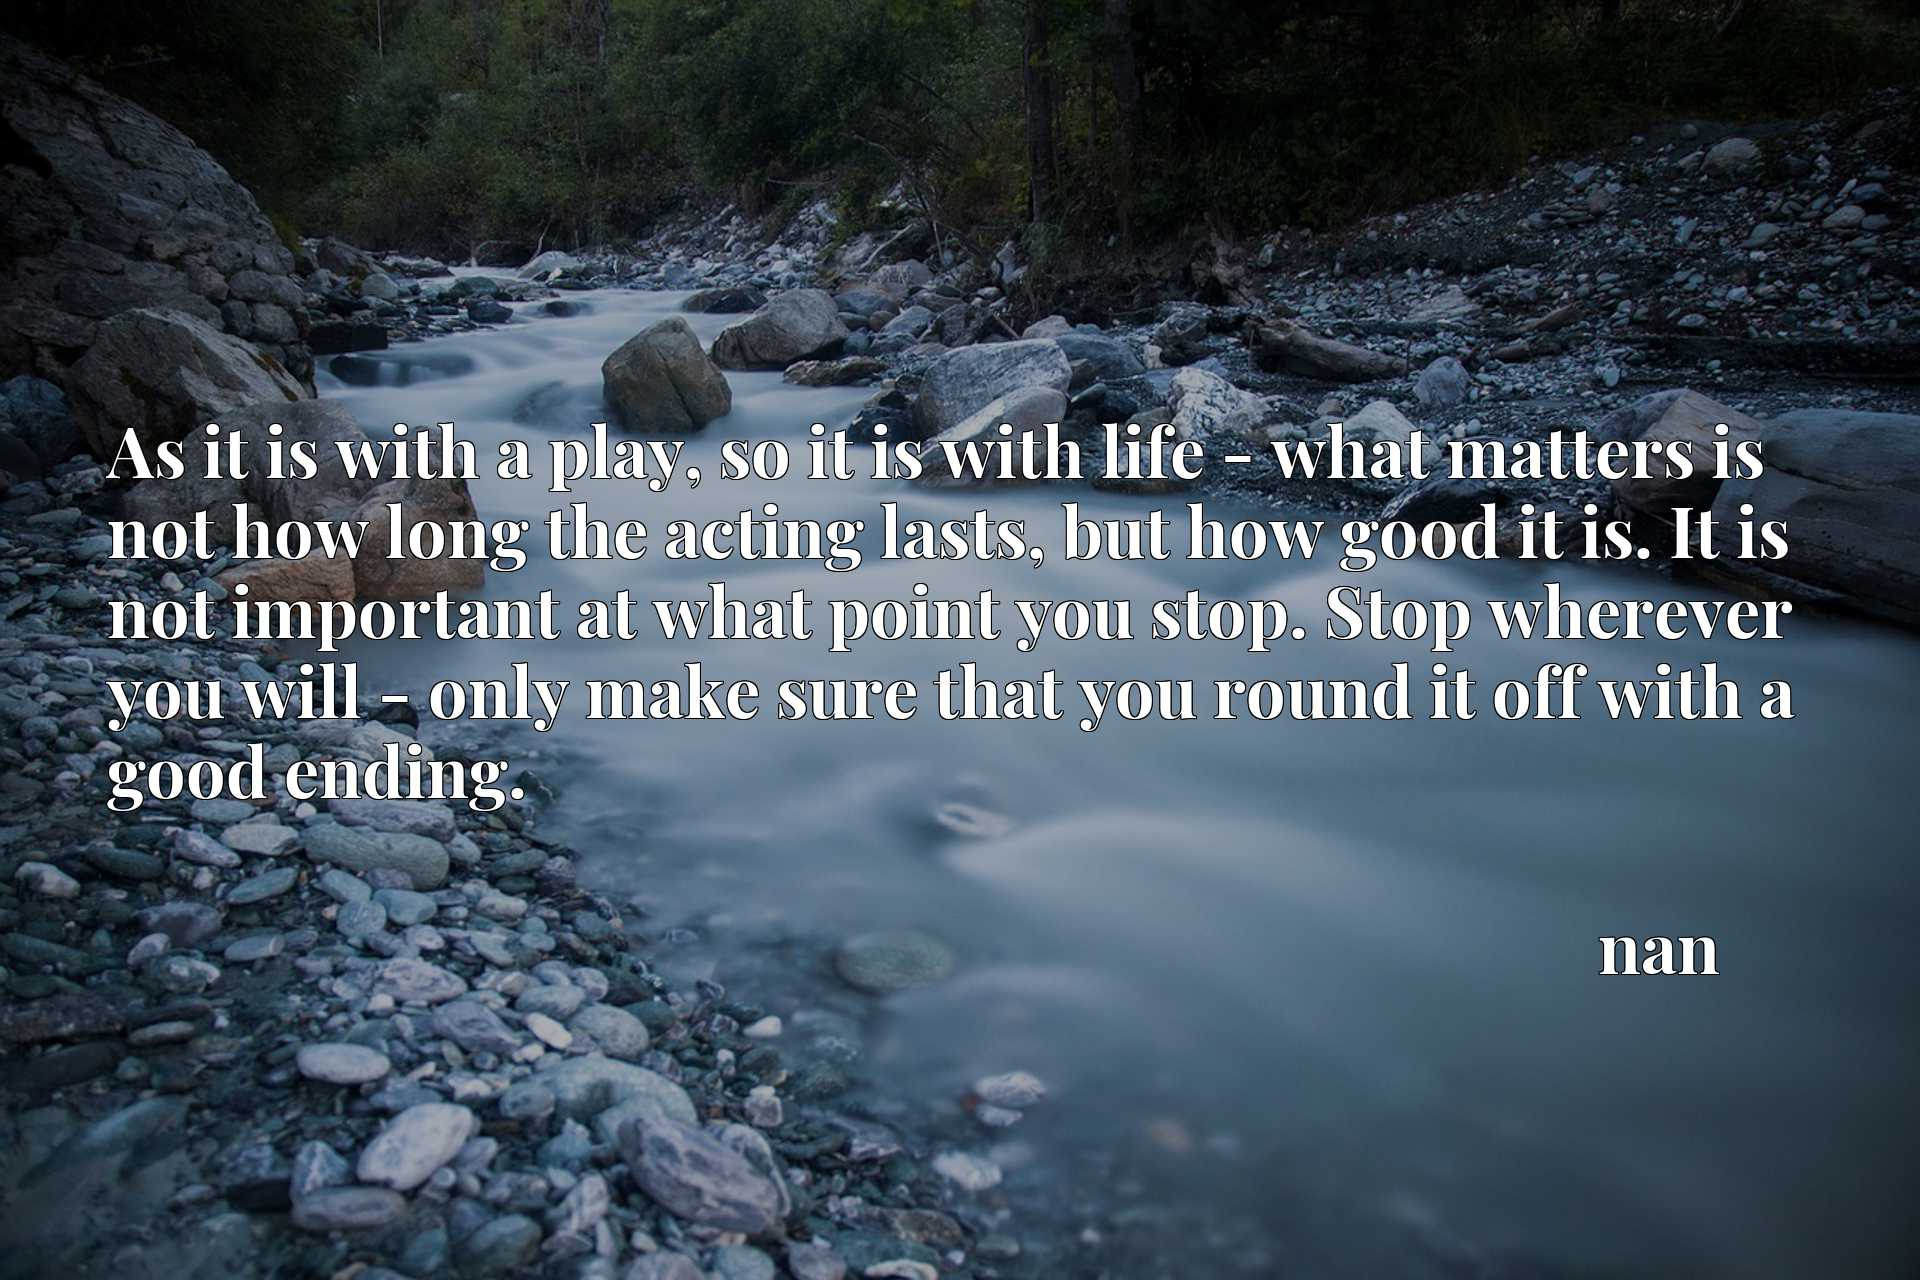 As it is with a play, so it is with life - what matters is not how long the acting lasts, but how good it is. It is not important at what point you stop. Stop wherever you will - only make sure that you round it off with a good ending.